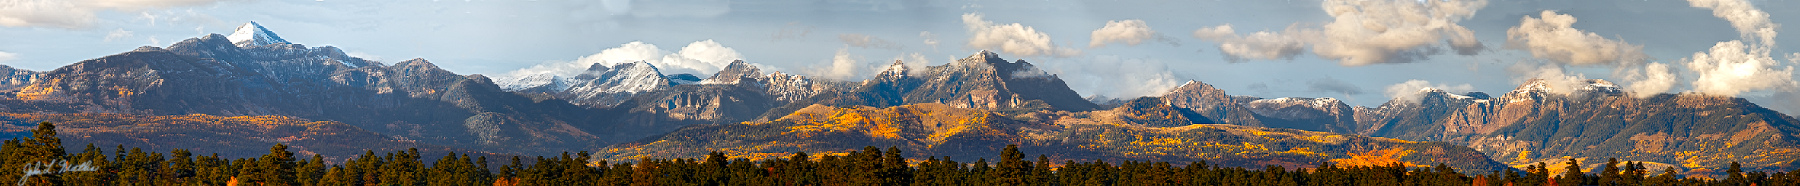 The San Juan mountains north of Pagosa Springs, CO on October 21, 2011.